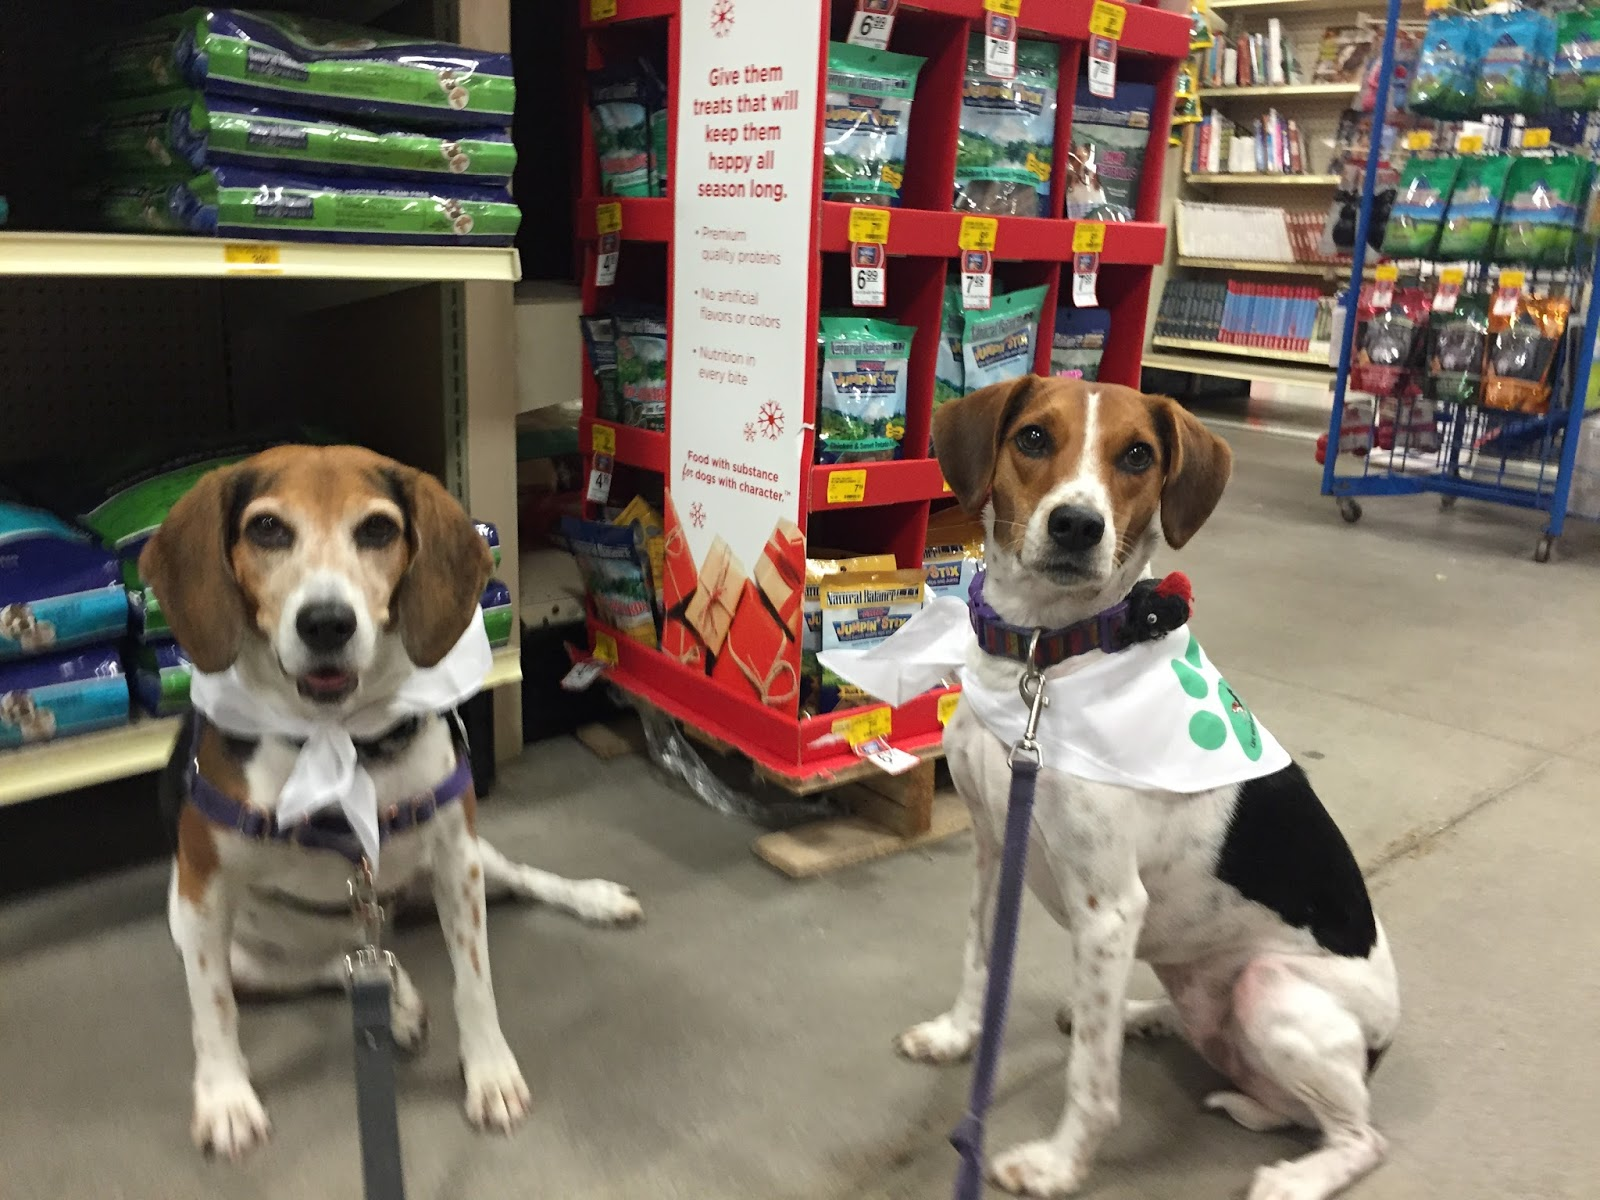 A Beagles Diet Life With Beagl...